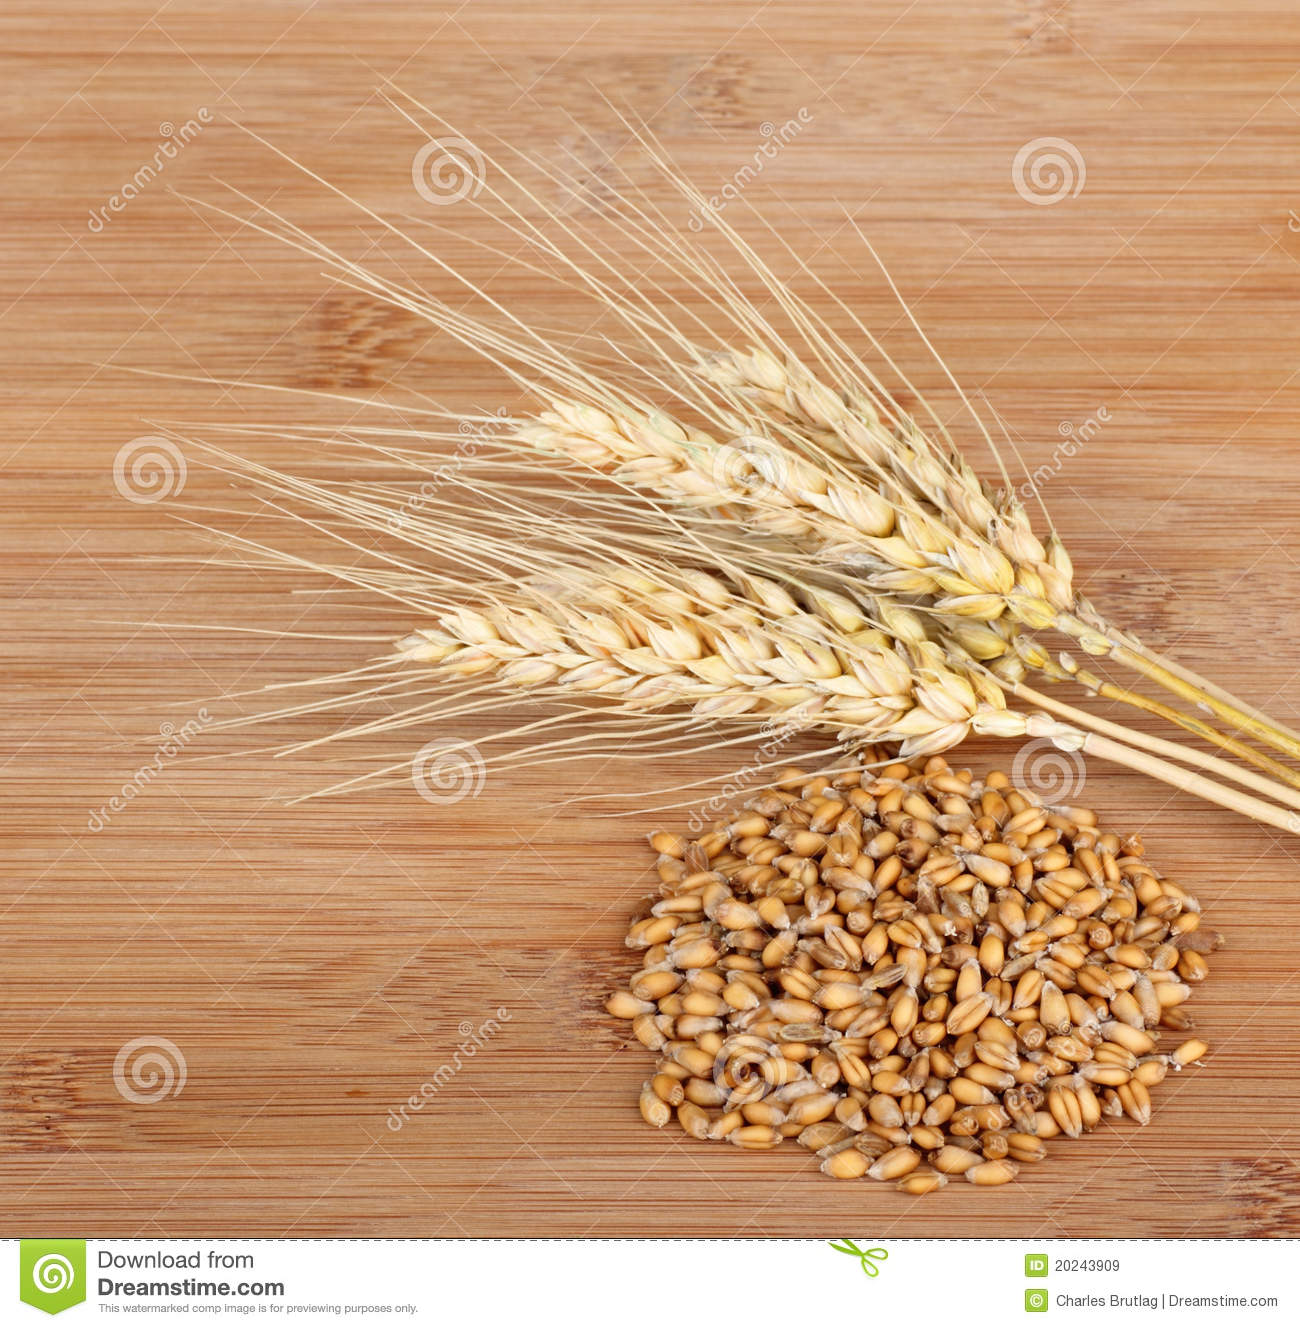 Wheat Heads And Wheat Grain Stock Image - Image of kernel